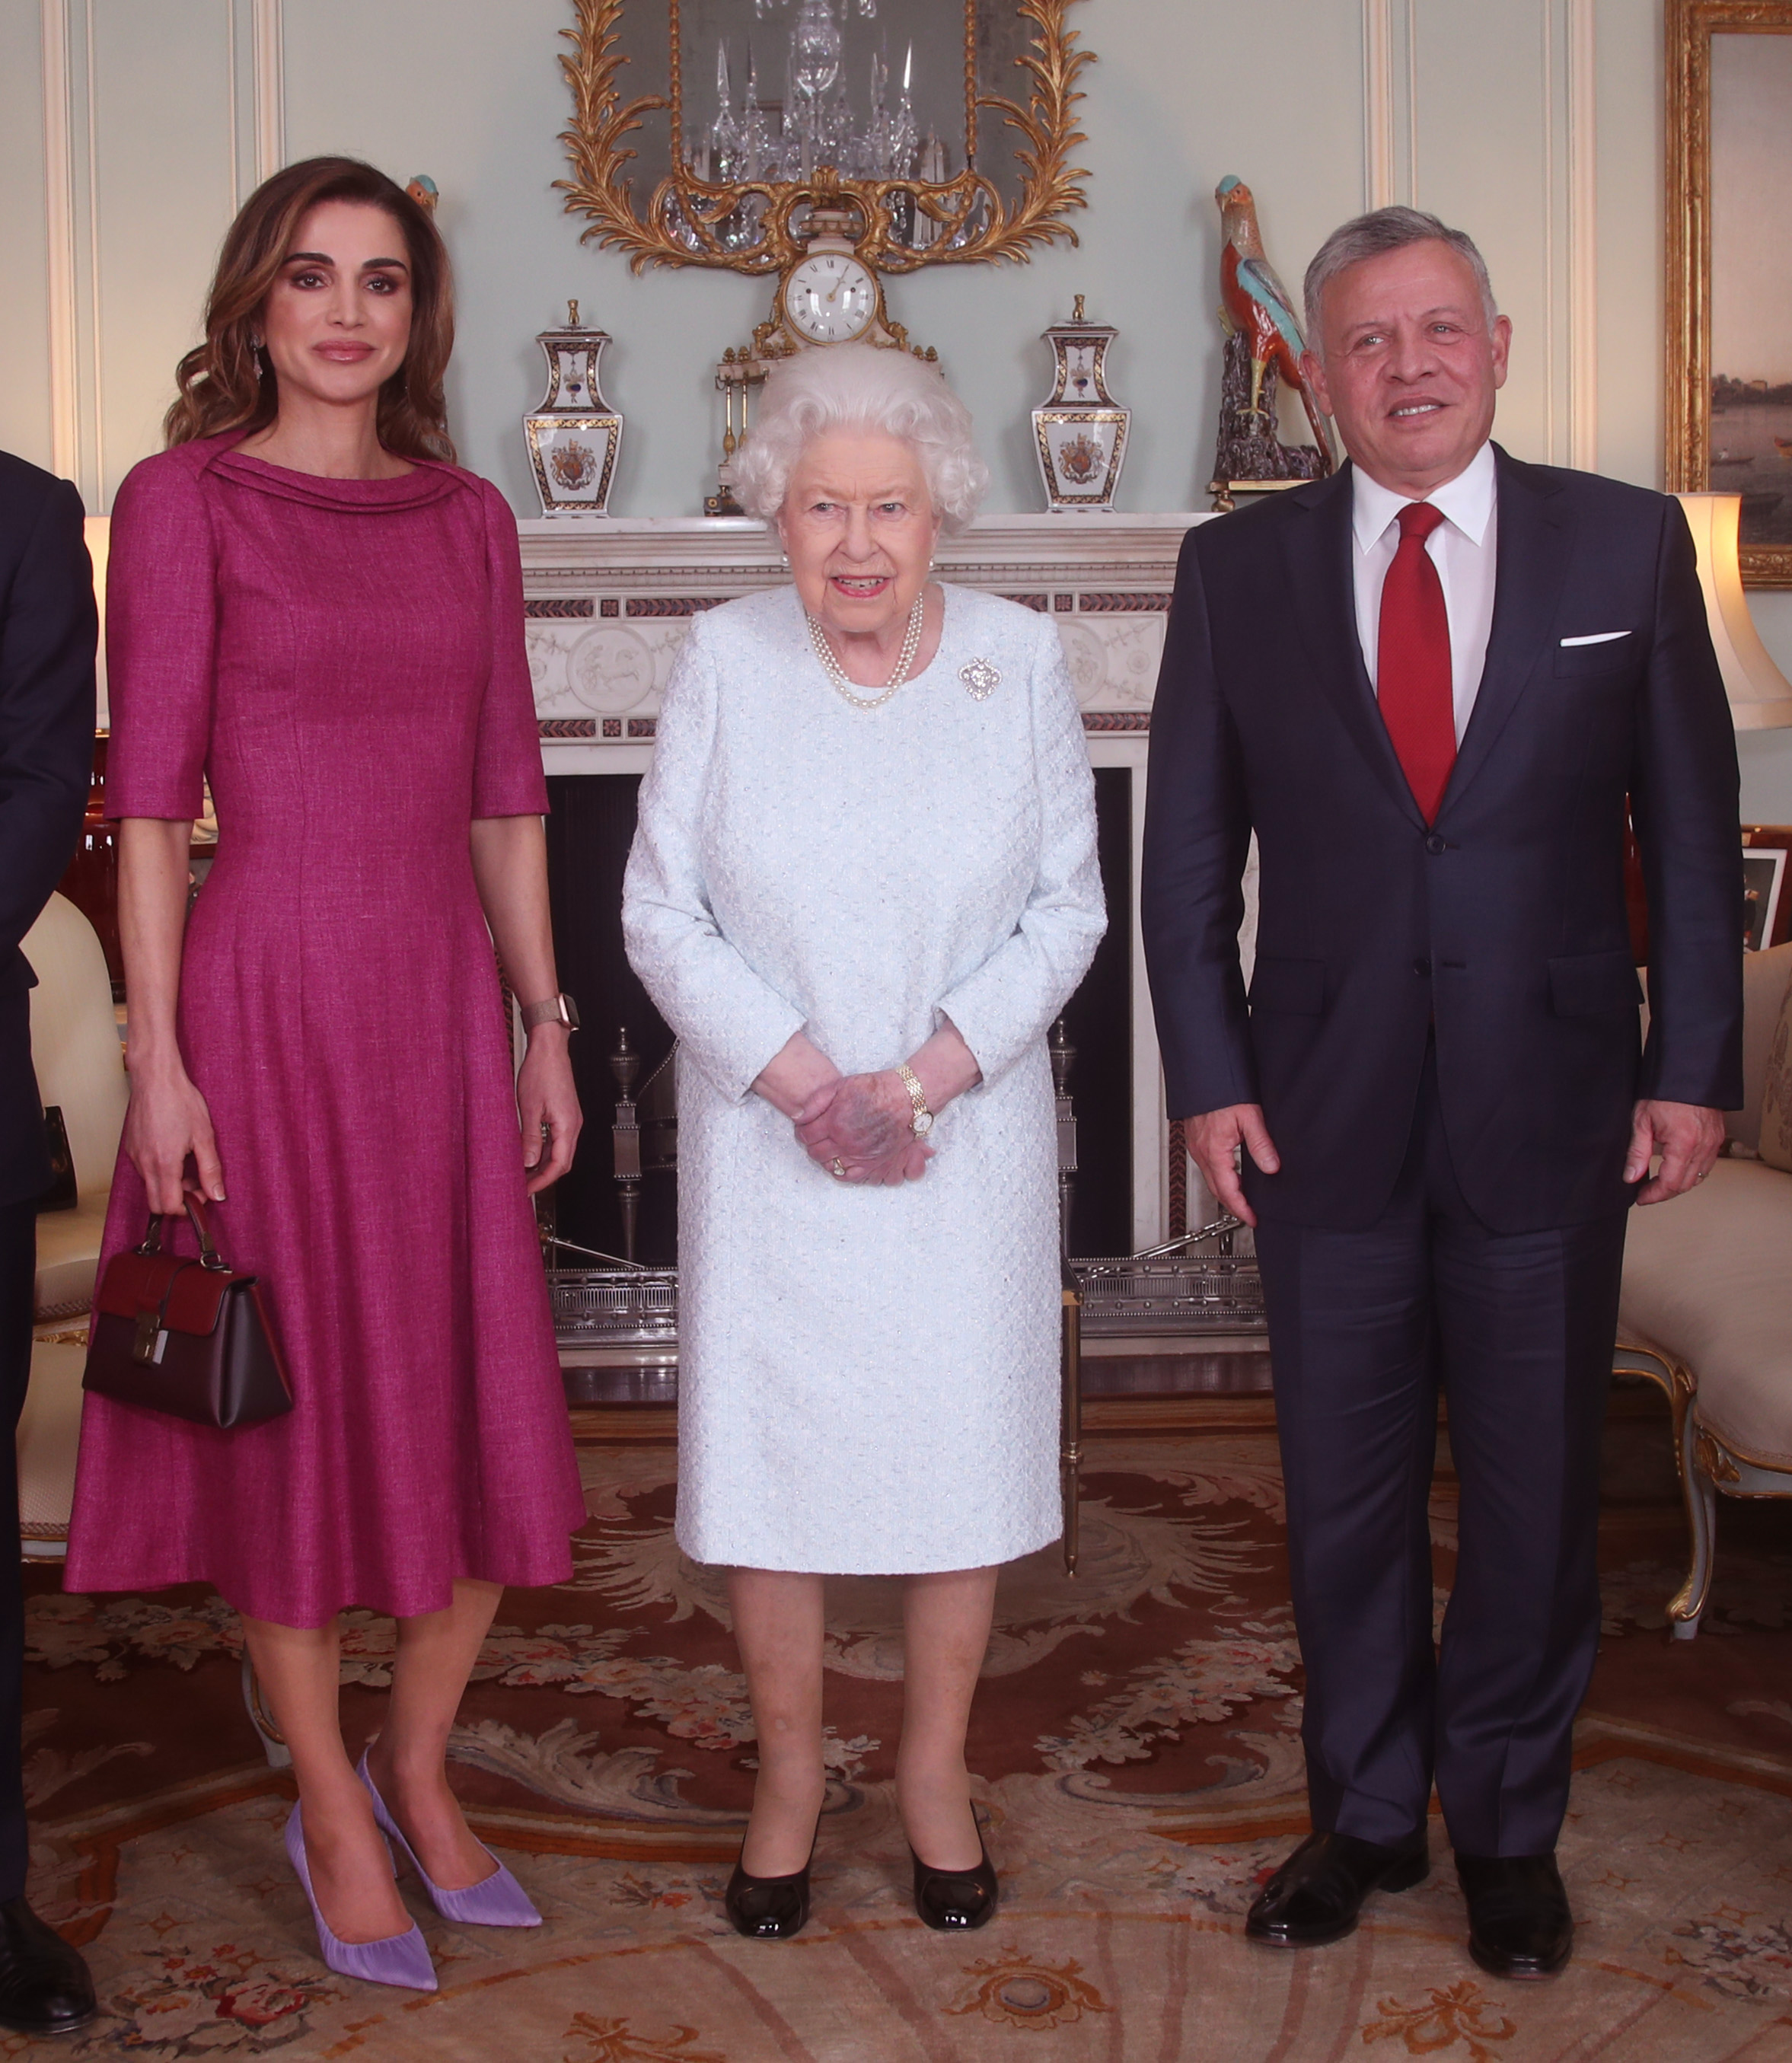 Queen Elizabeth II with Queen Rania of Jordan